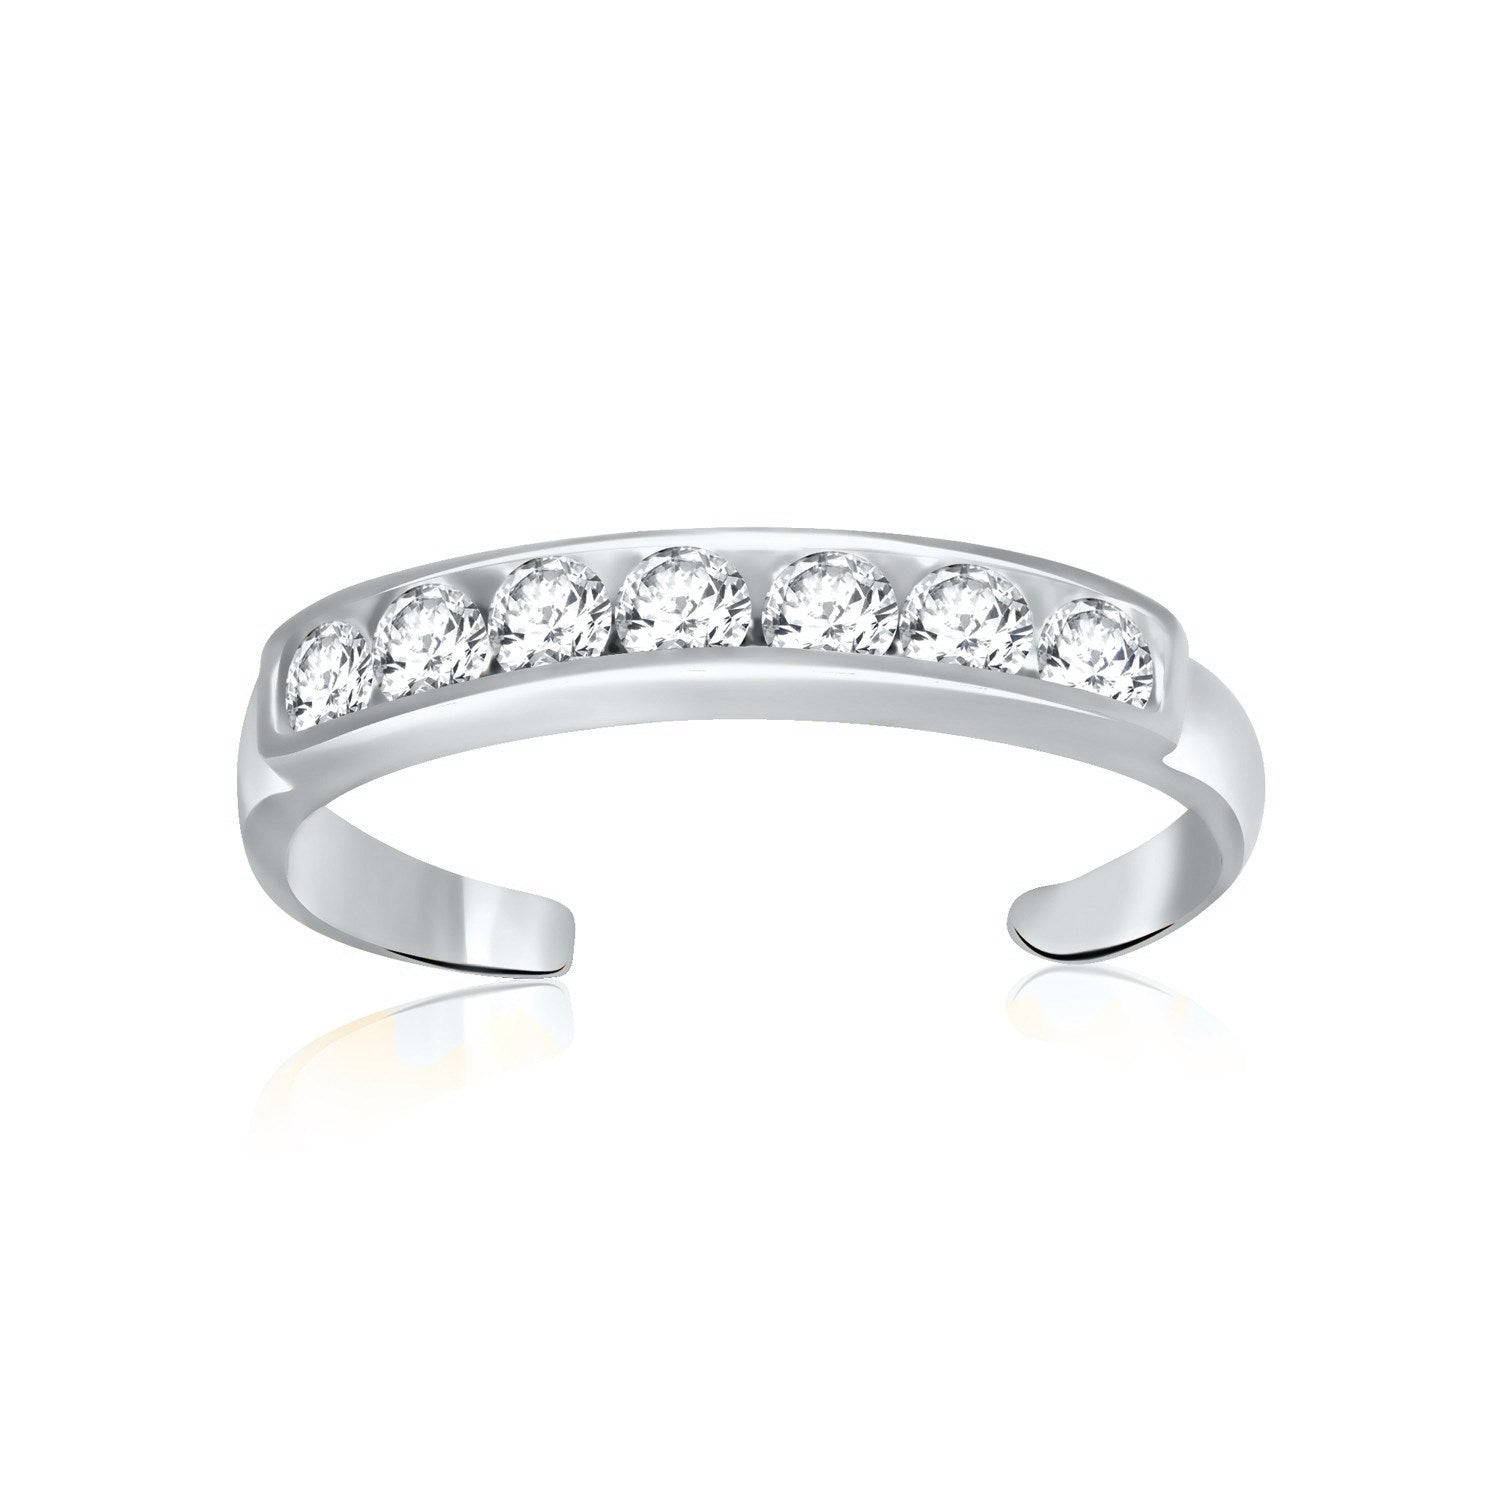 14K White Gold Pave Set Cubic Zirconia Toe Ring - Uniquepedia.com